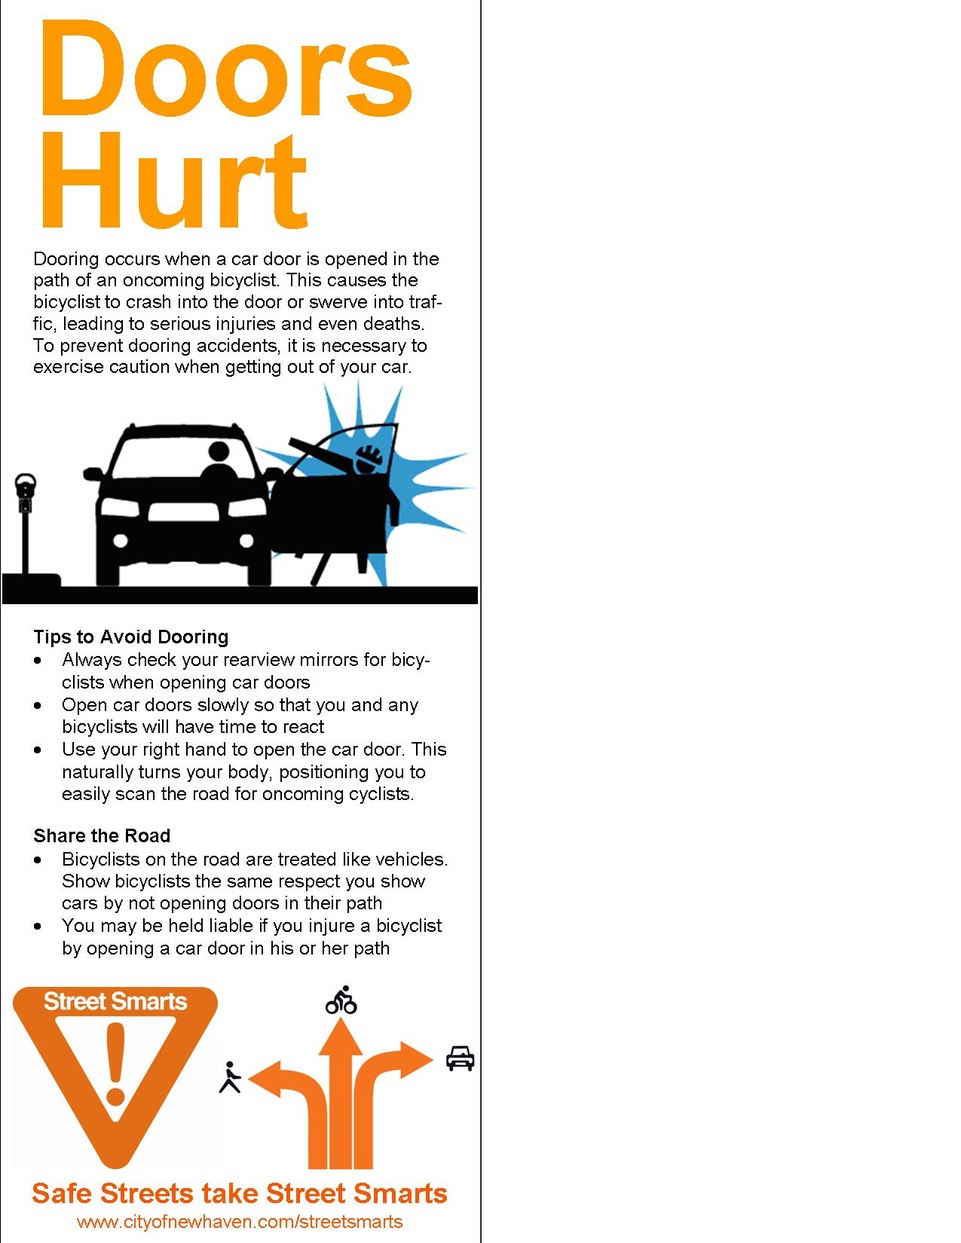 Anti-dooring flier recommends far hand method to drivers, part of New Haven, CT's Dept. of Transportation, Traffic & Parking bike safety initiative of 2013.